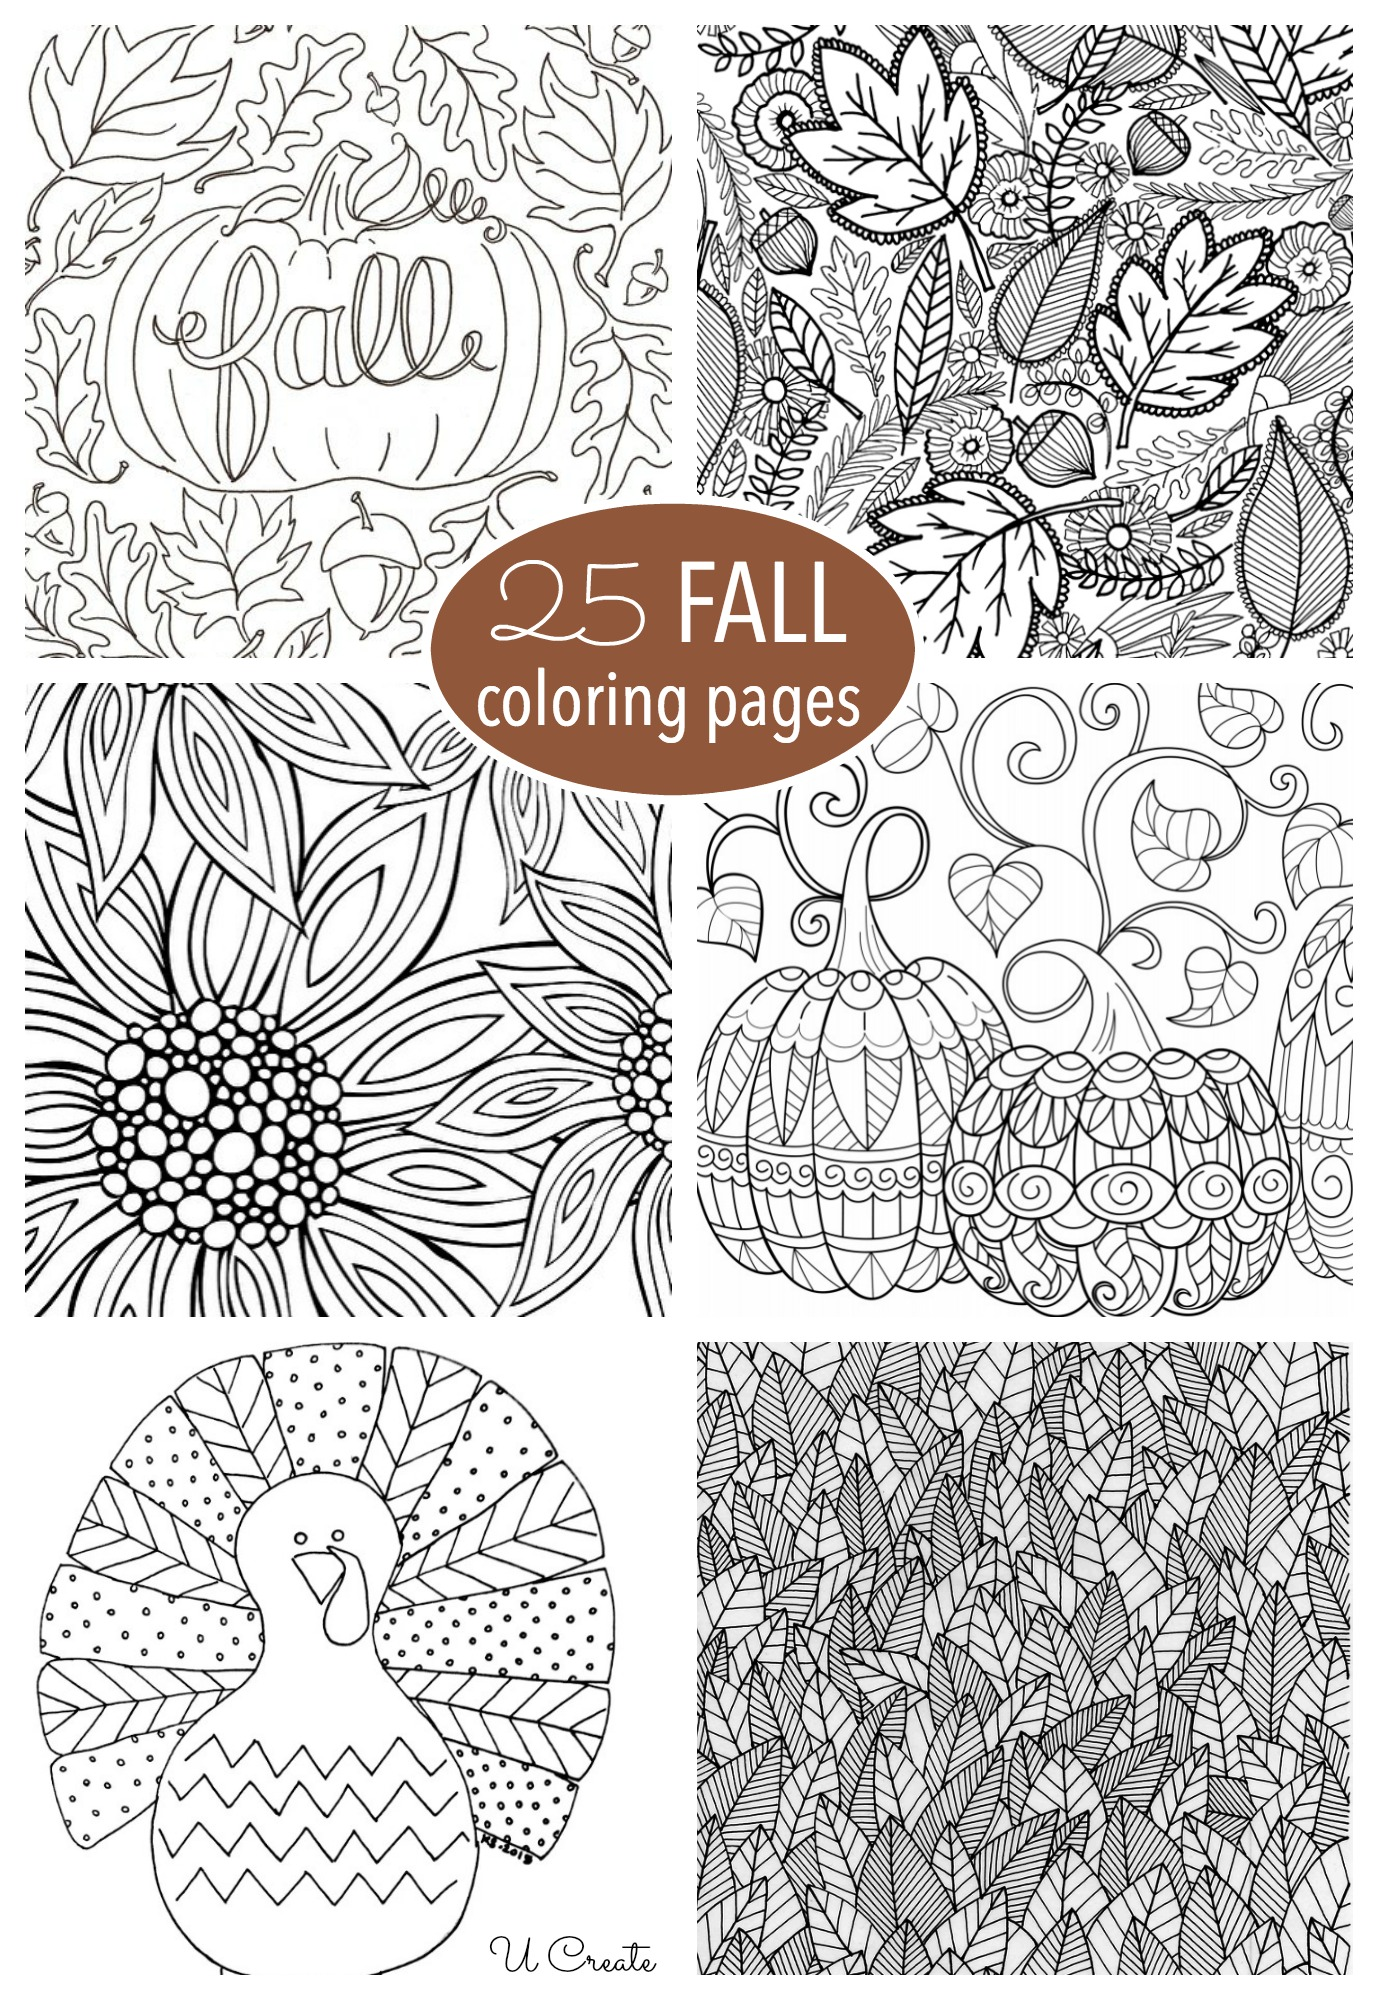 image about Printable Fall Color Pages identify Cost-free Drop Grownup Coloring Internet pages - U Build